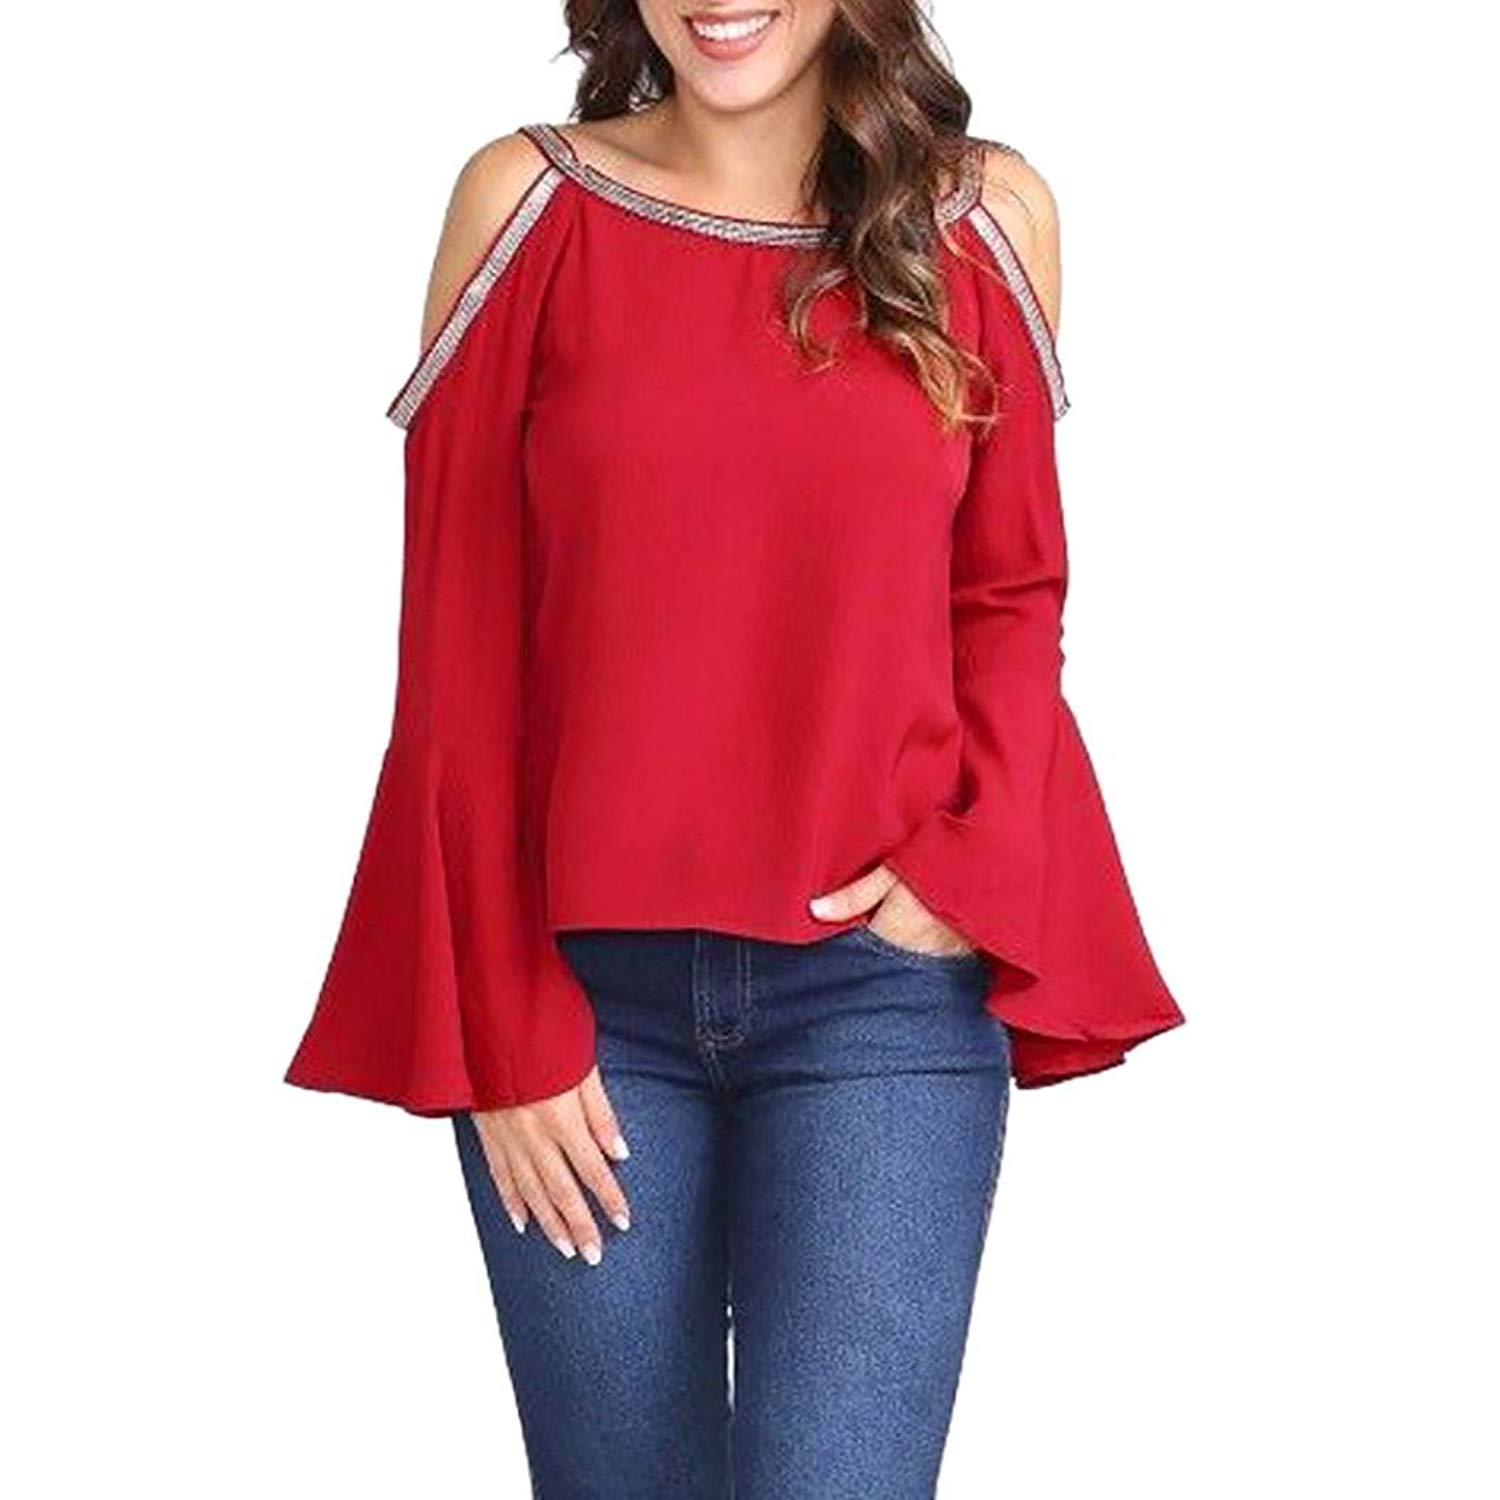 Kinrui women blouse and t-shirt Women's Cold Shoulder Solid Blouse Glitter Flare Sleeve Loose Basic T-Shirt Top